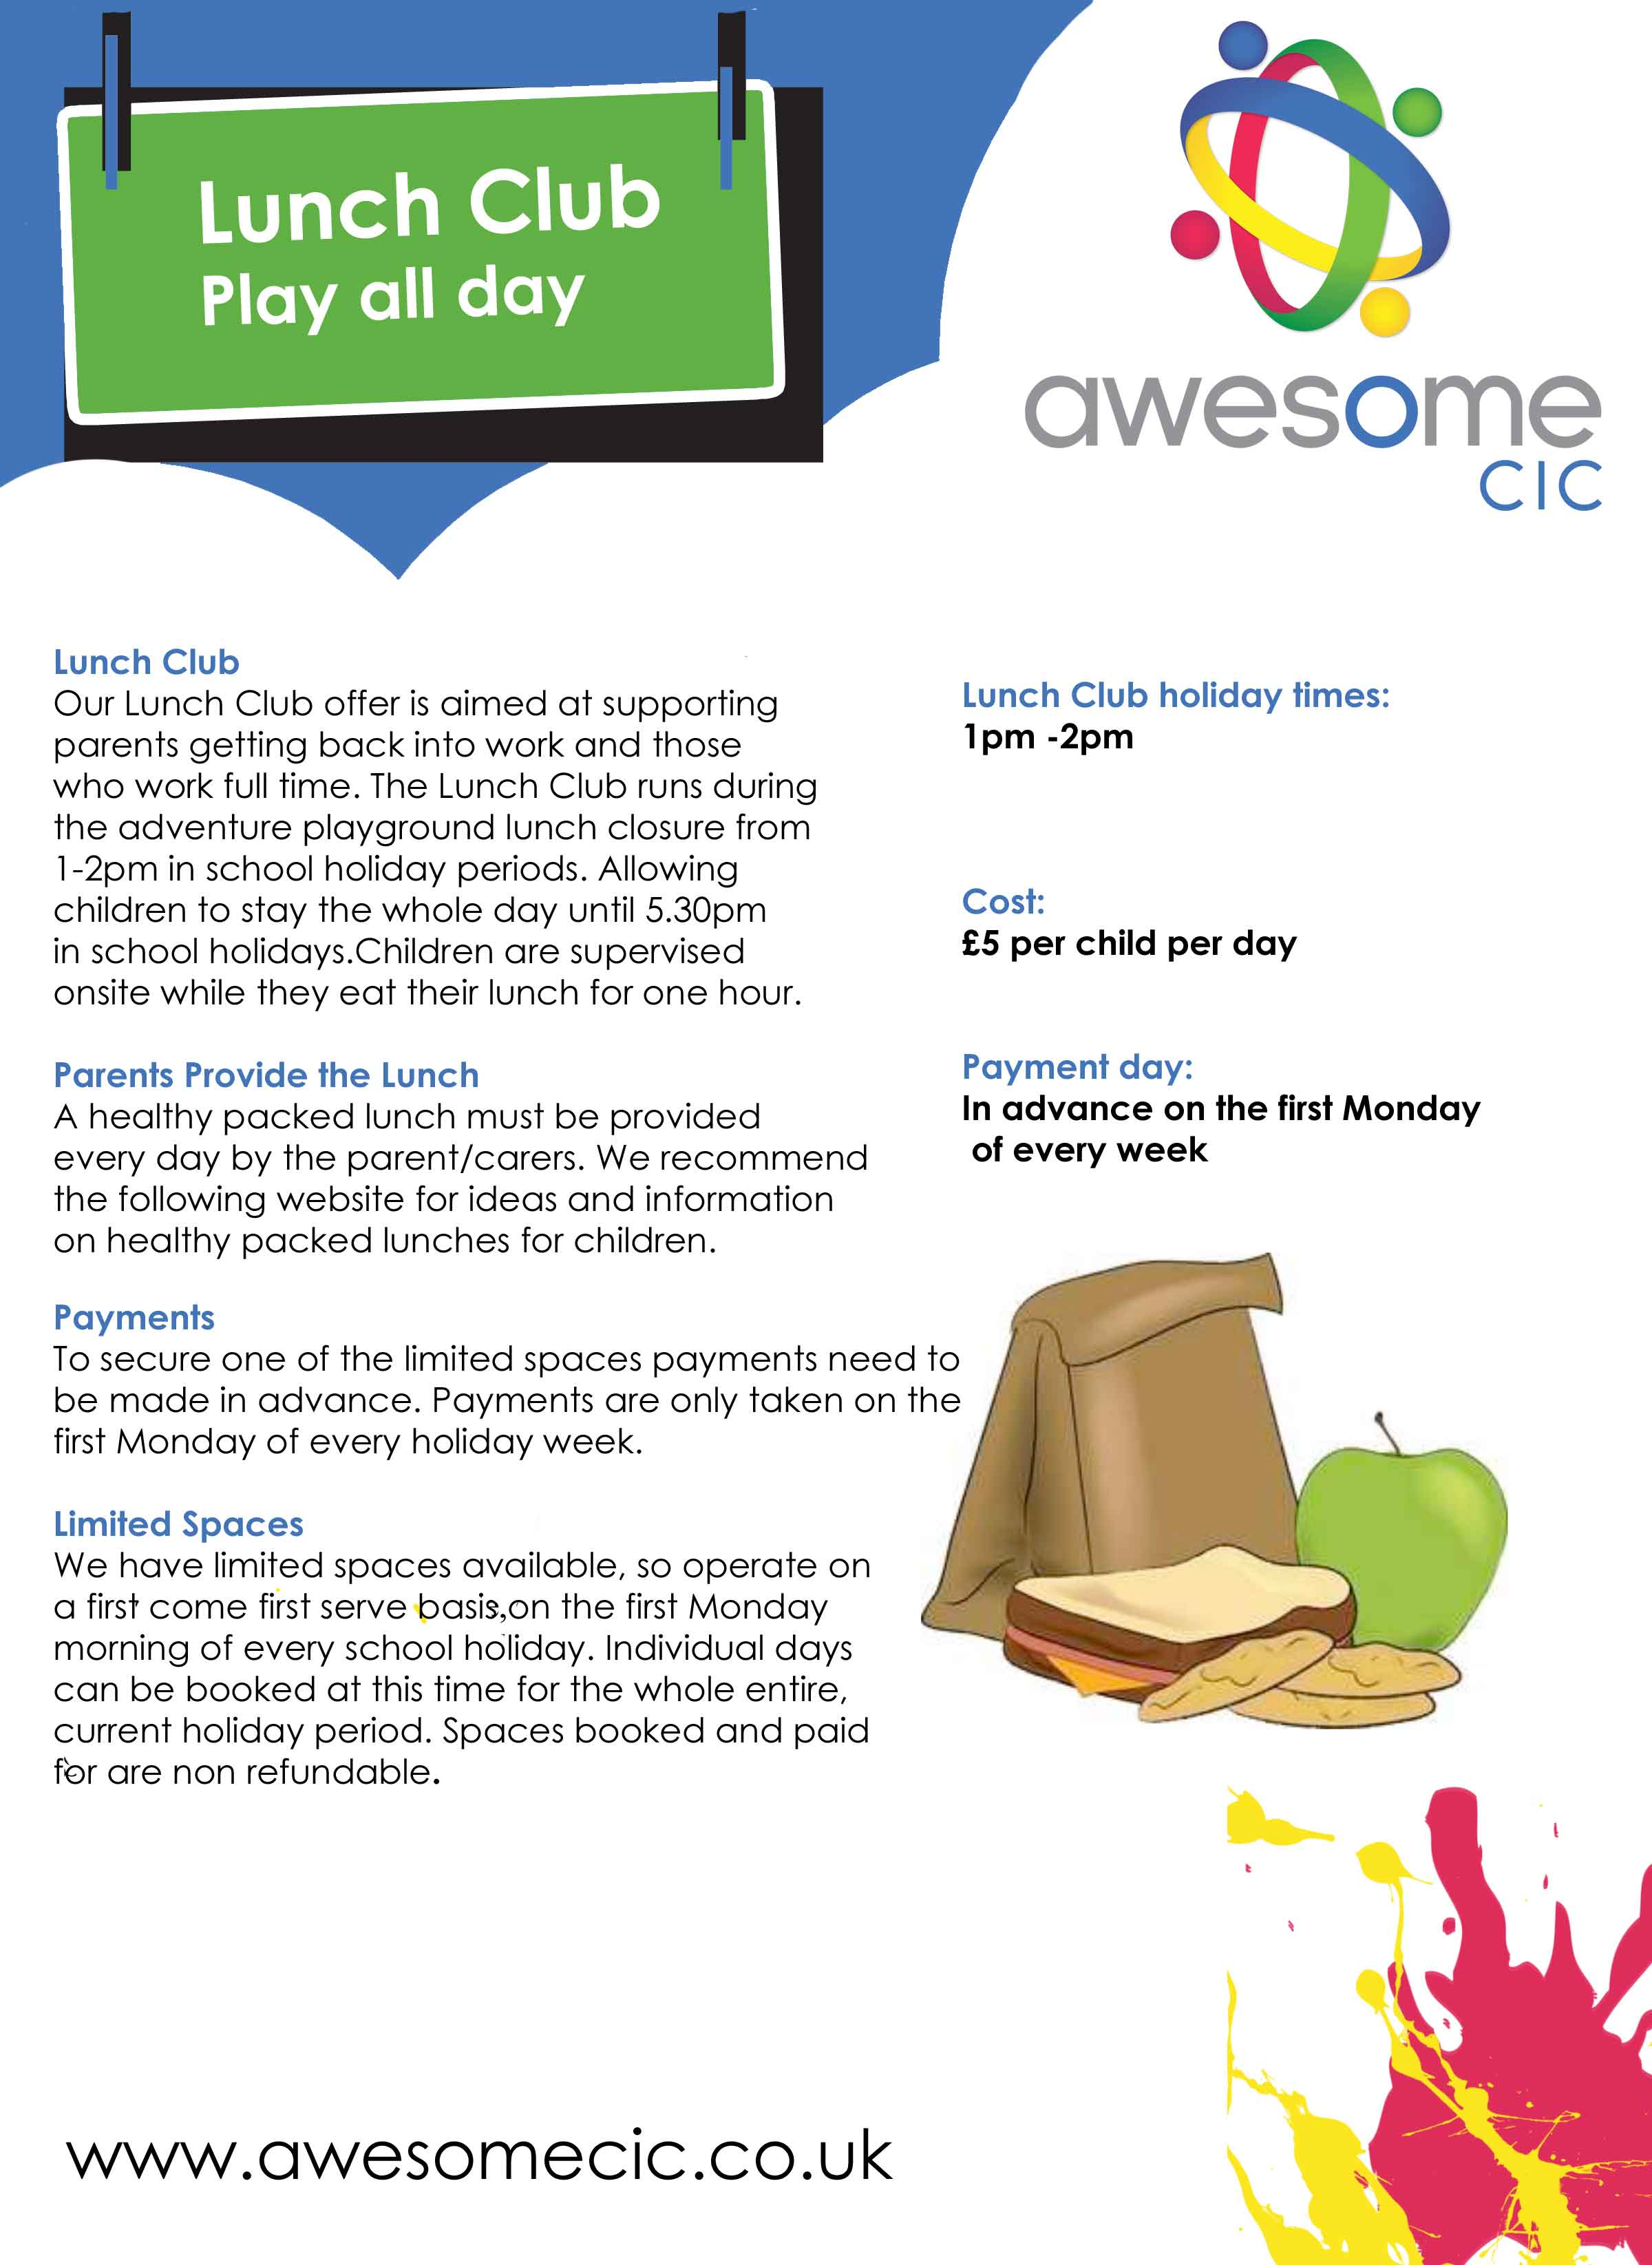 Cape Adventure Playground School Holiday Offer – Awesome CIC